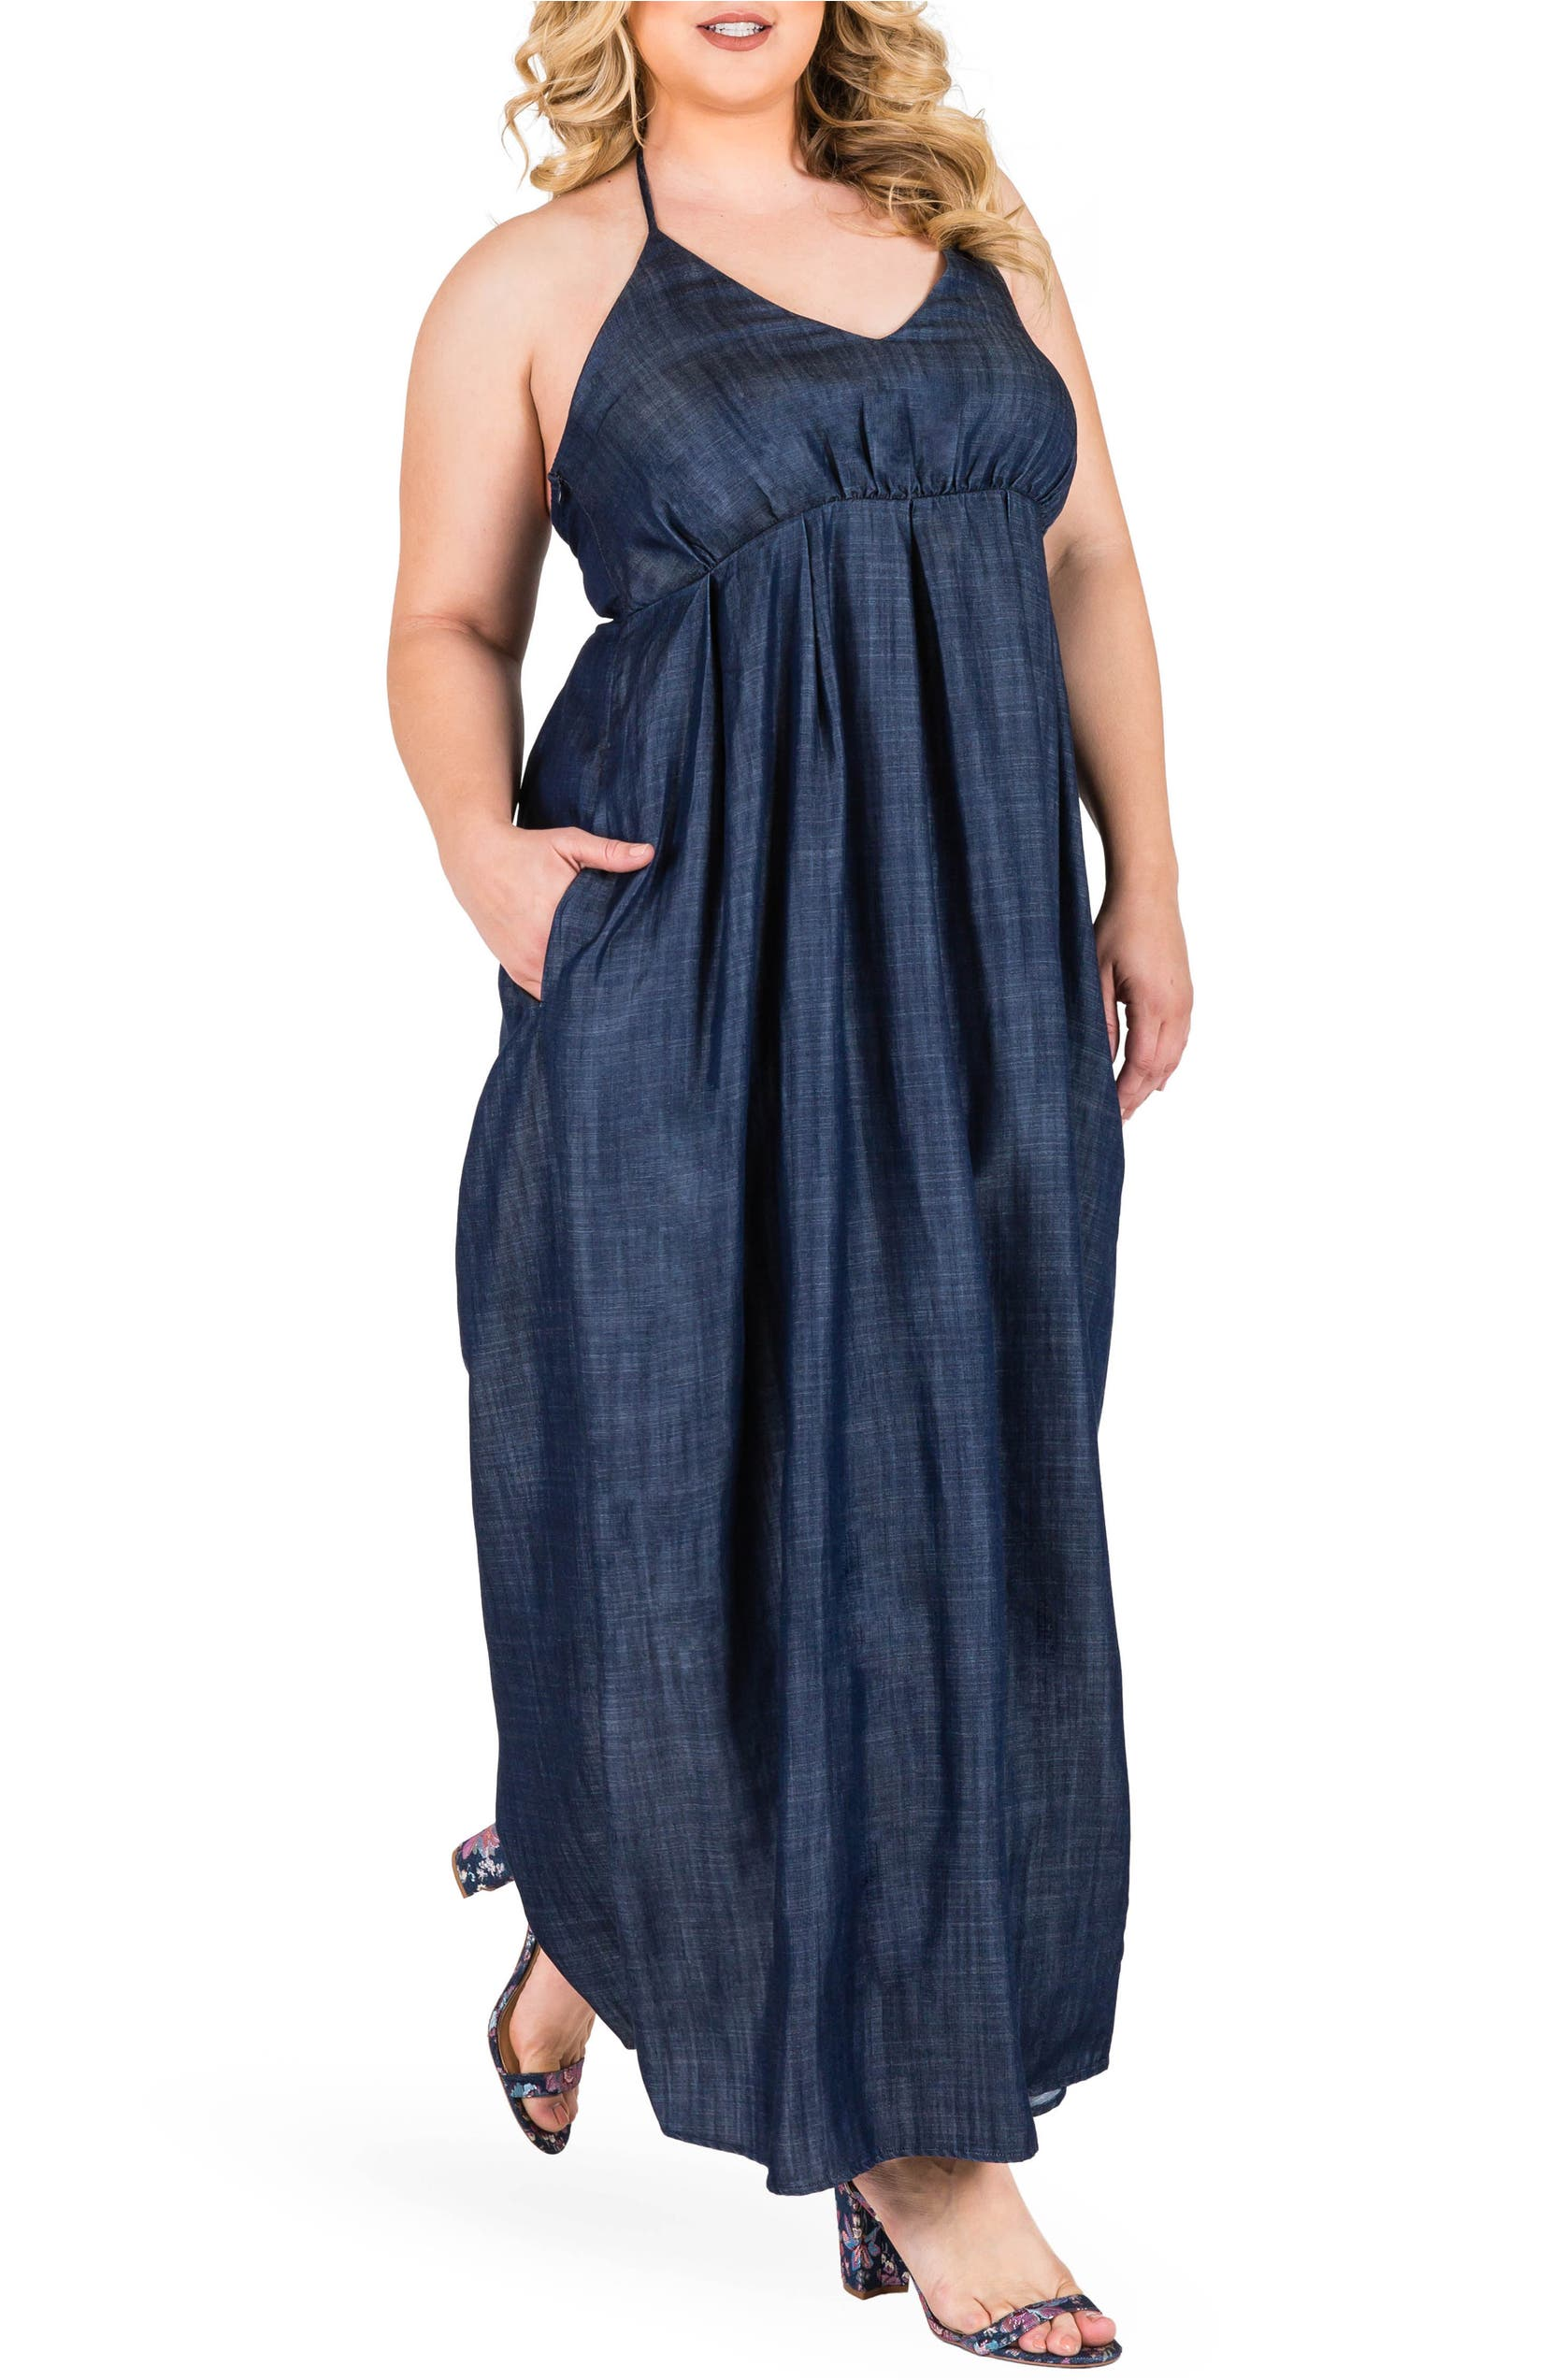 Maui Maxi Chambray Halter Dress